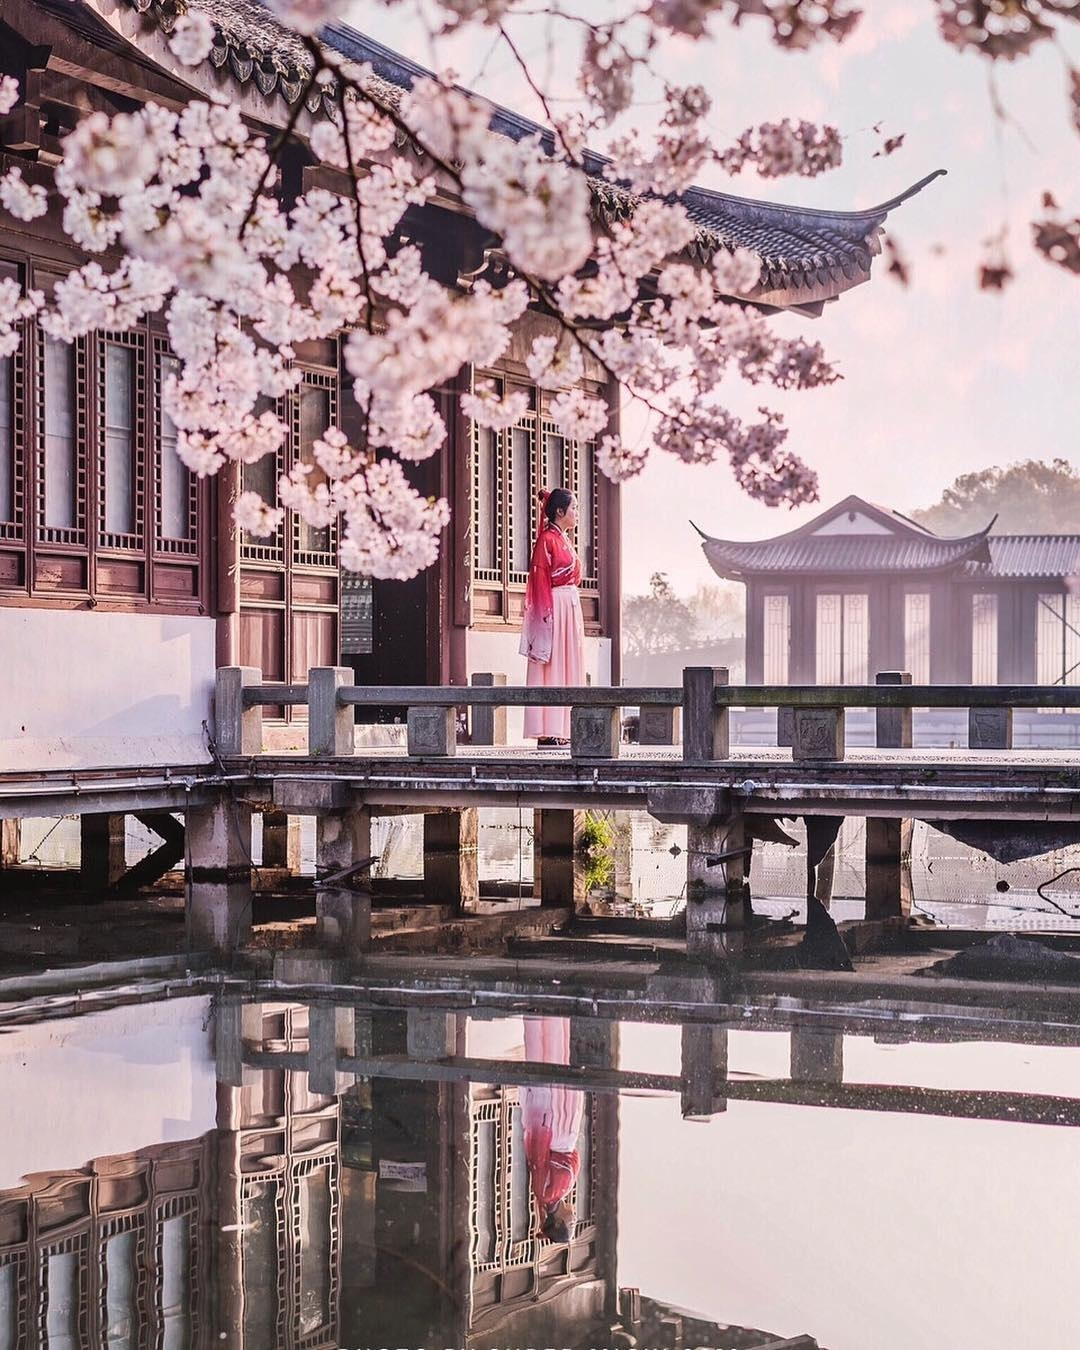 Ảnh: nowdiscovering